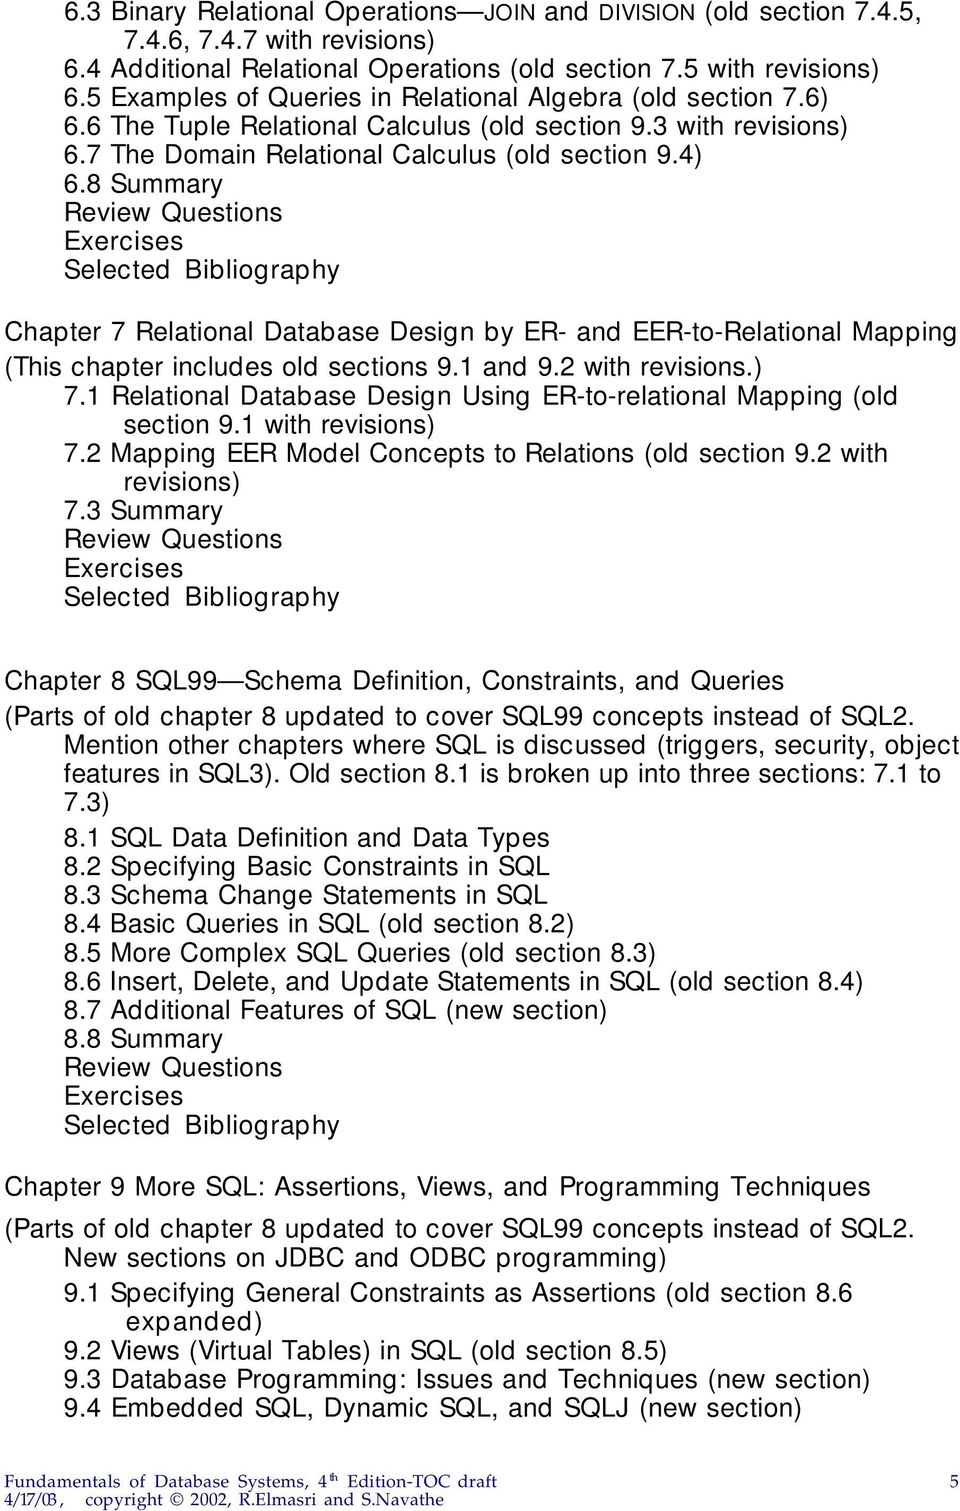 8 Summary Chapter 7 Relational Database Design by ER- and EER-to-Relational Mapping (This chapter includes old sections 9.1 and 9.2 with revisions.) 7.